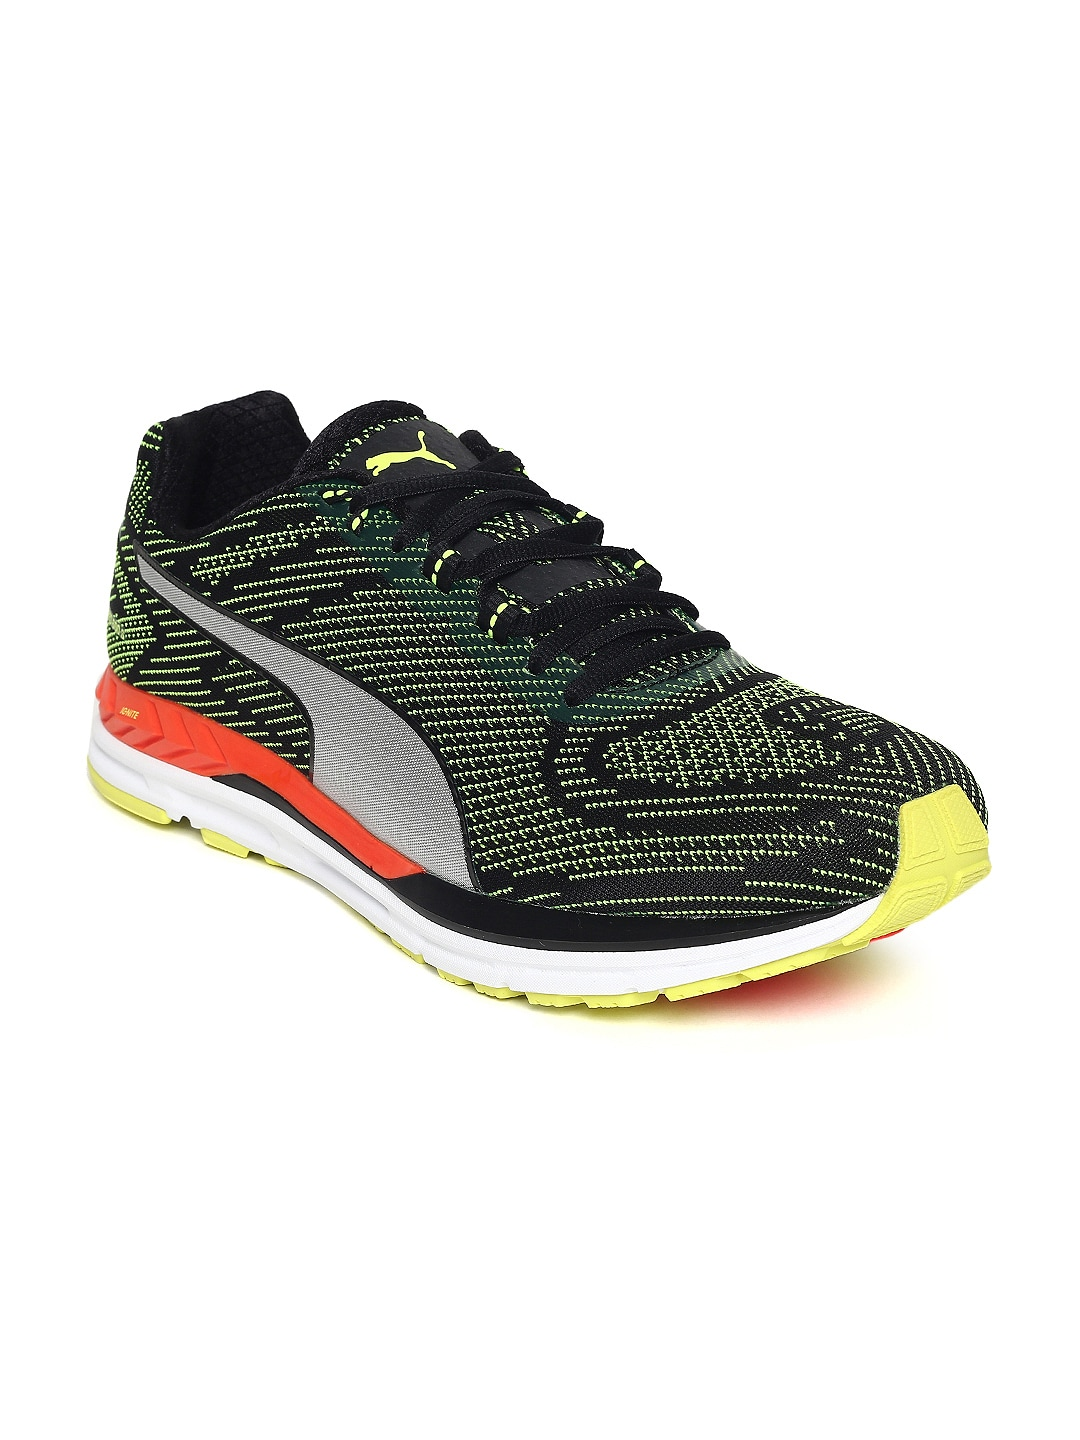 bb8f5a47631 Puma Shoes - Buy Puma Shoes for Men   Women Online in India